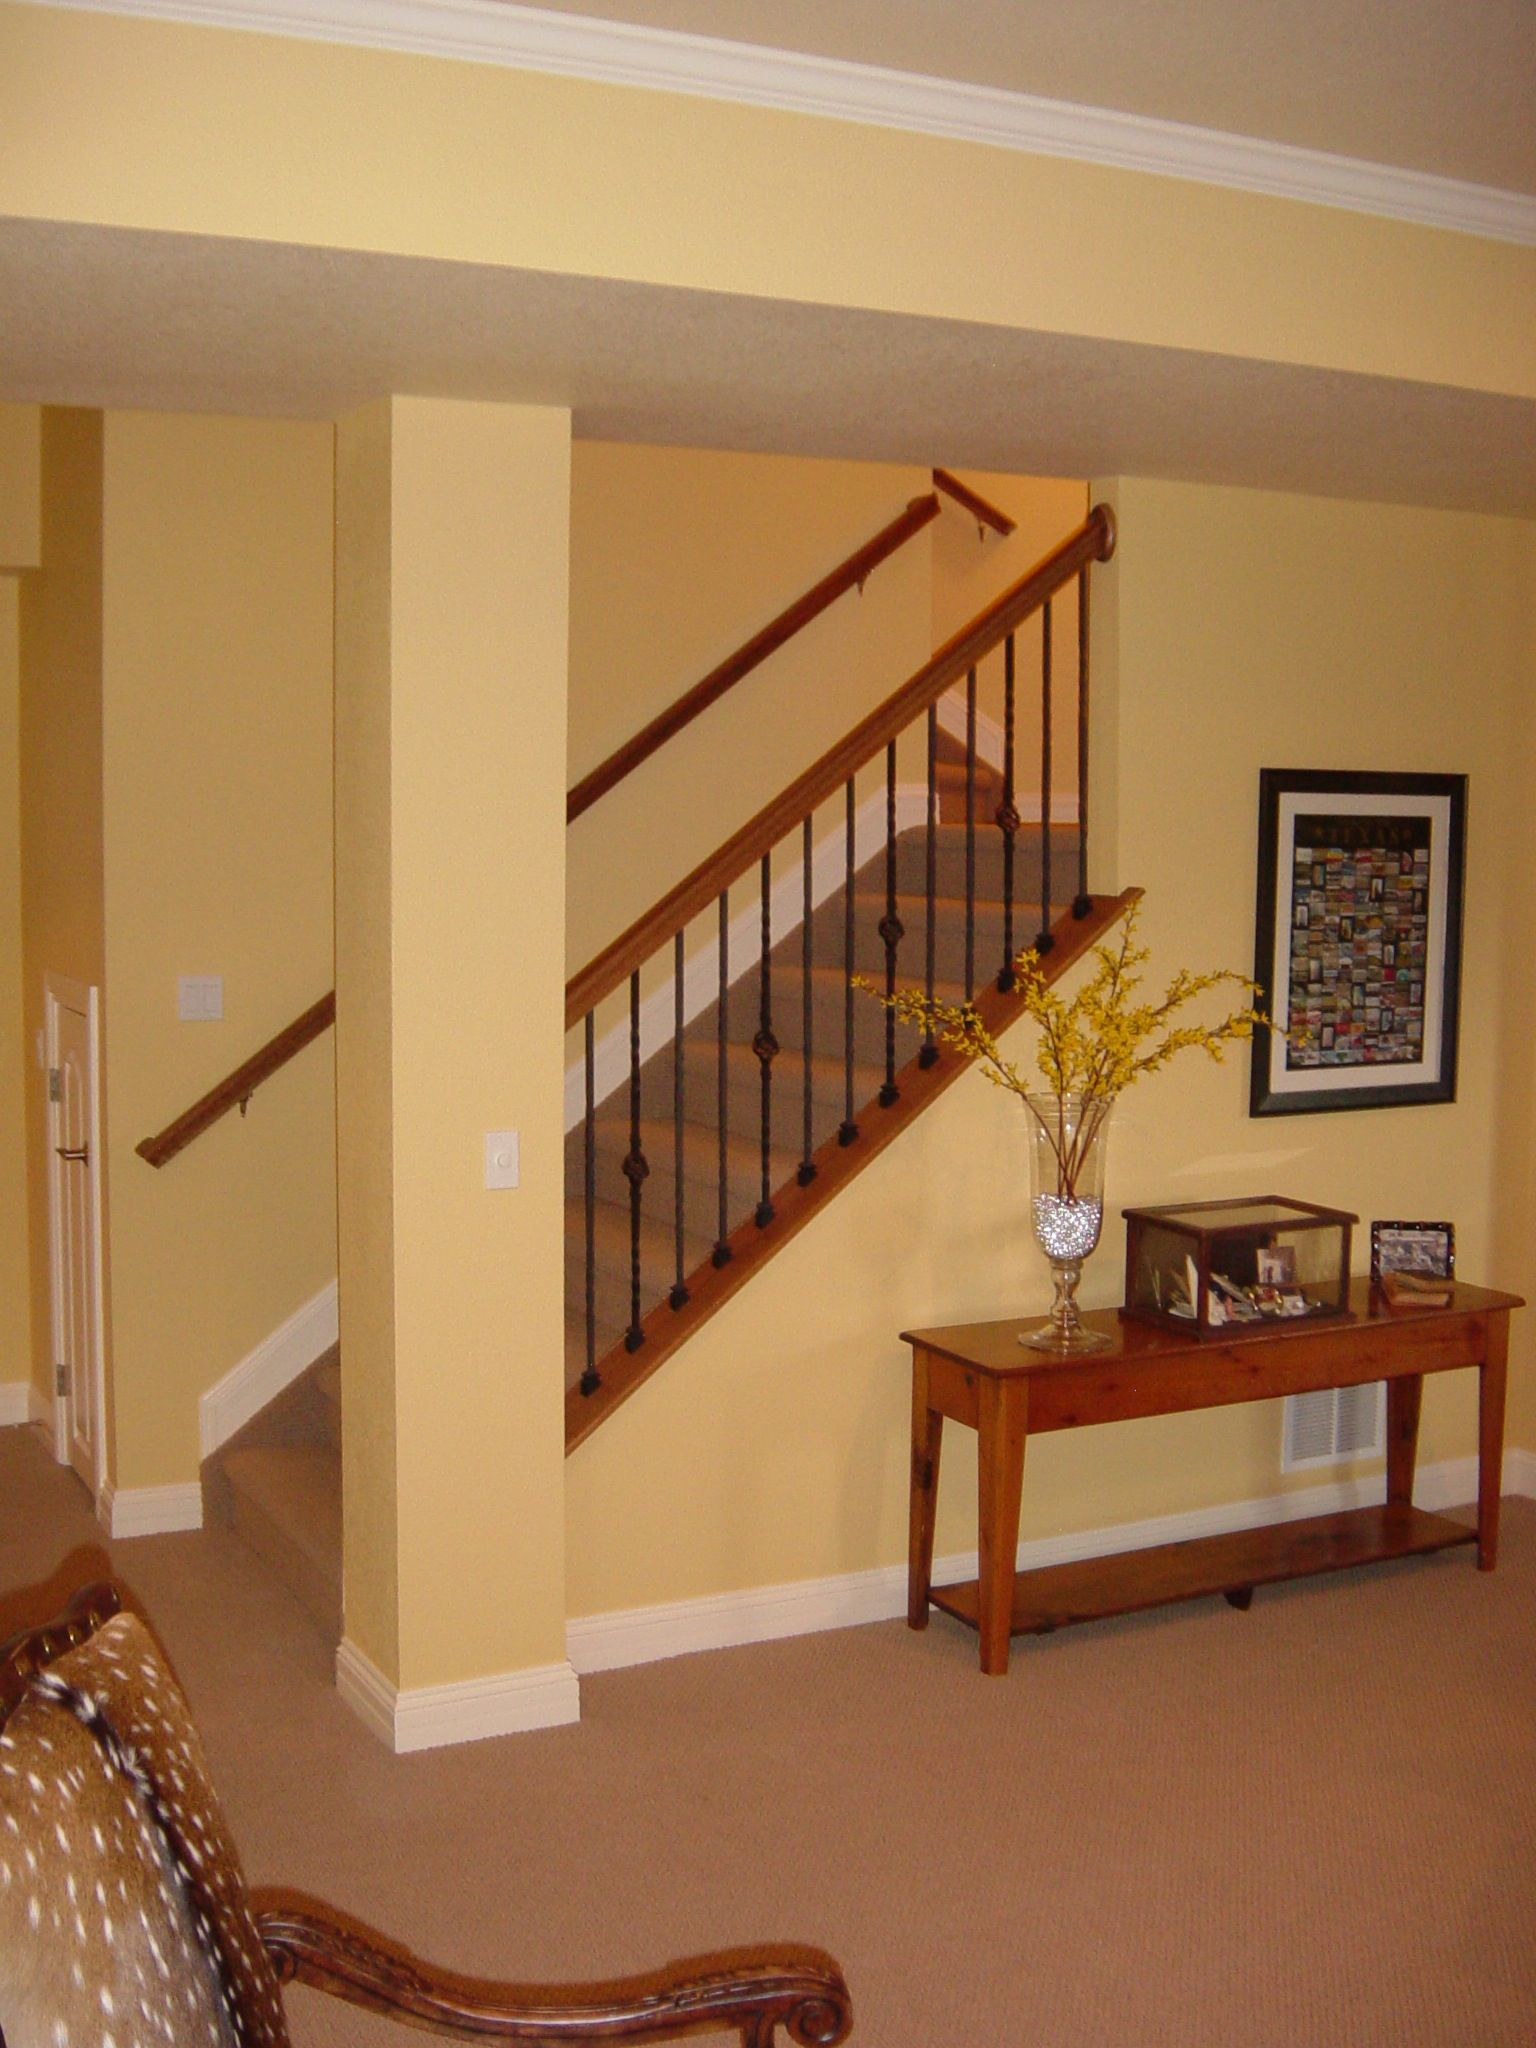 When homes are constructed with unfinished basements, the